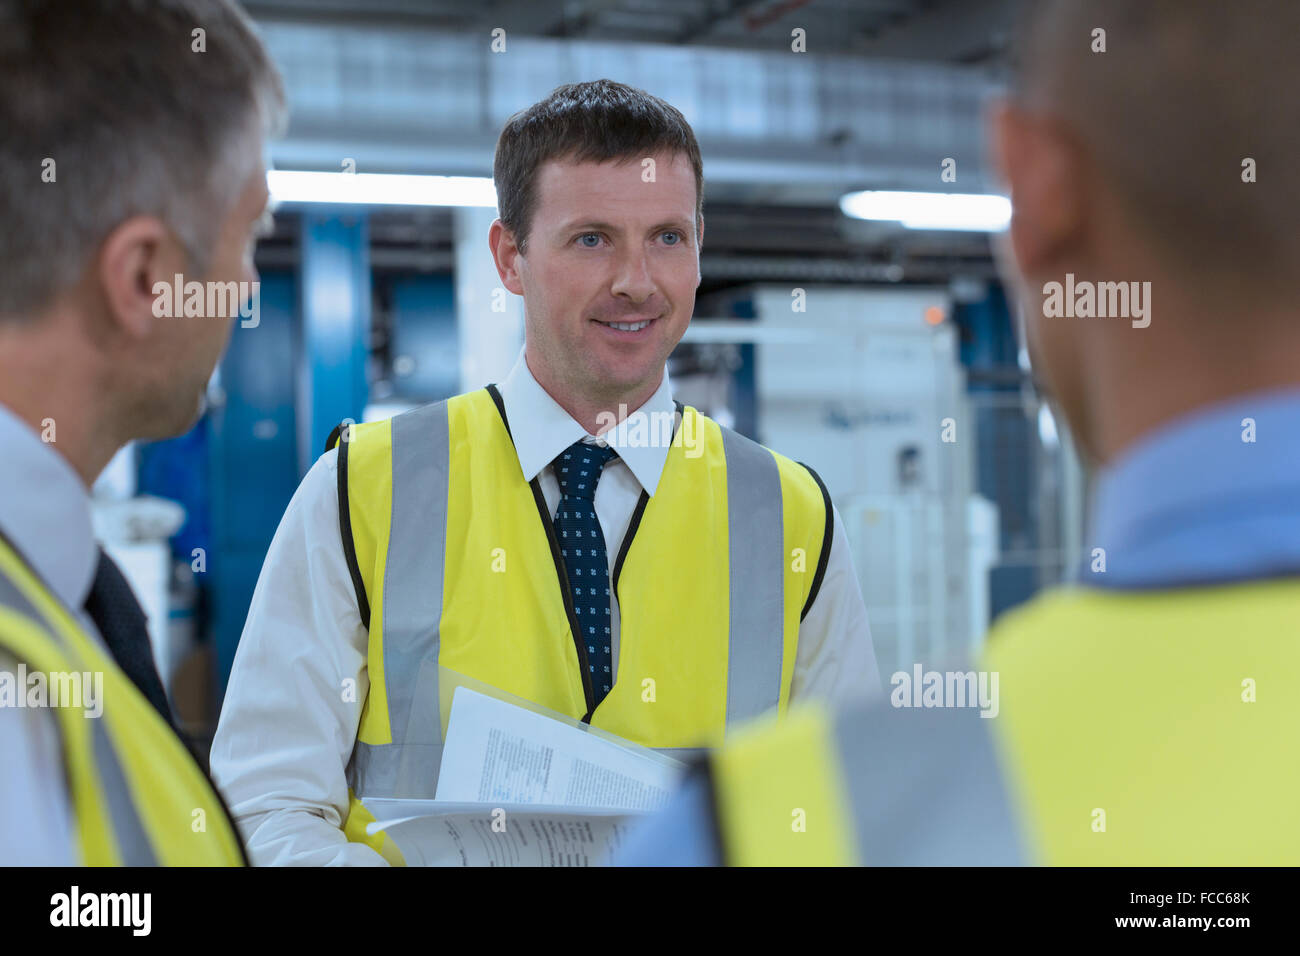 Workers in reflective clothing talking in factory - Stock Image